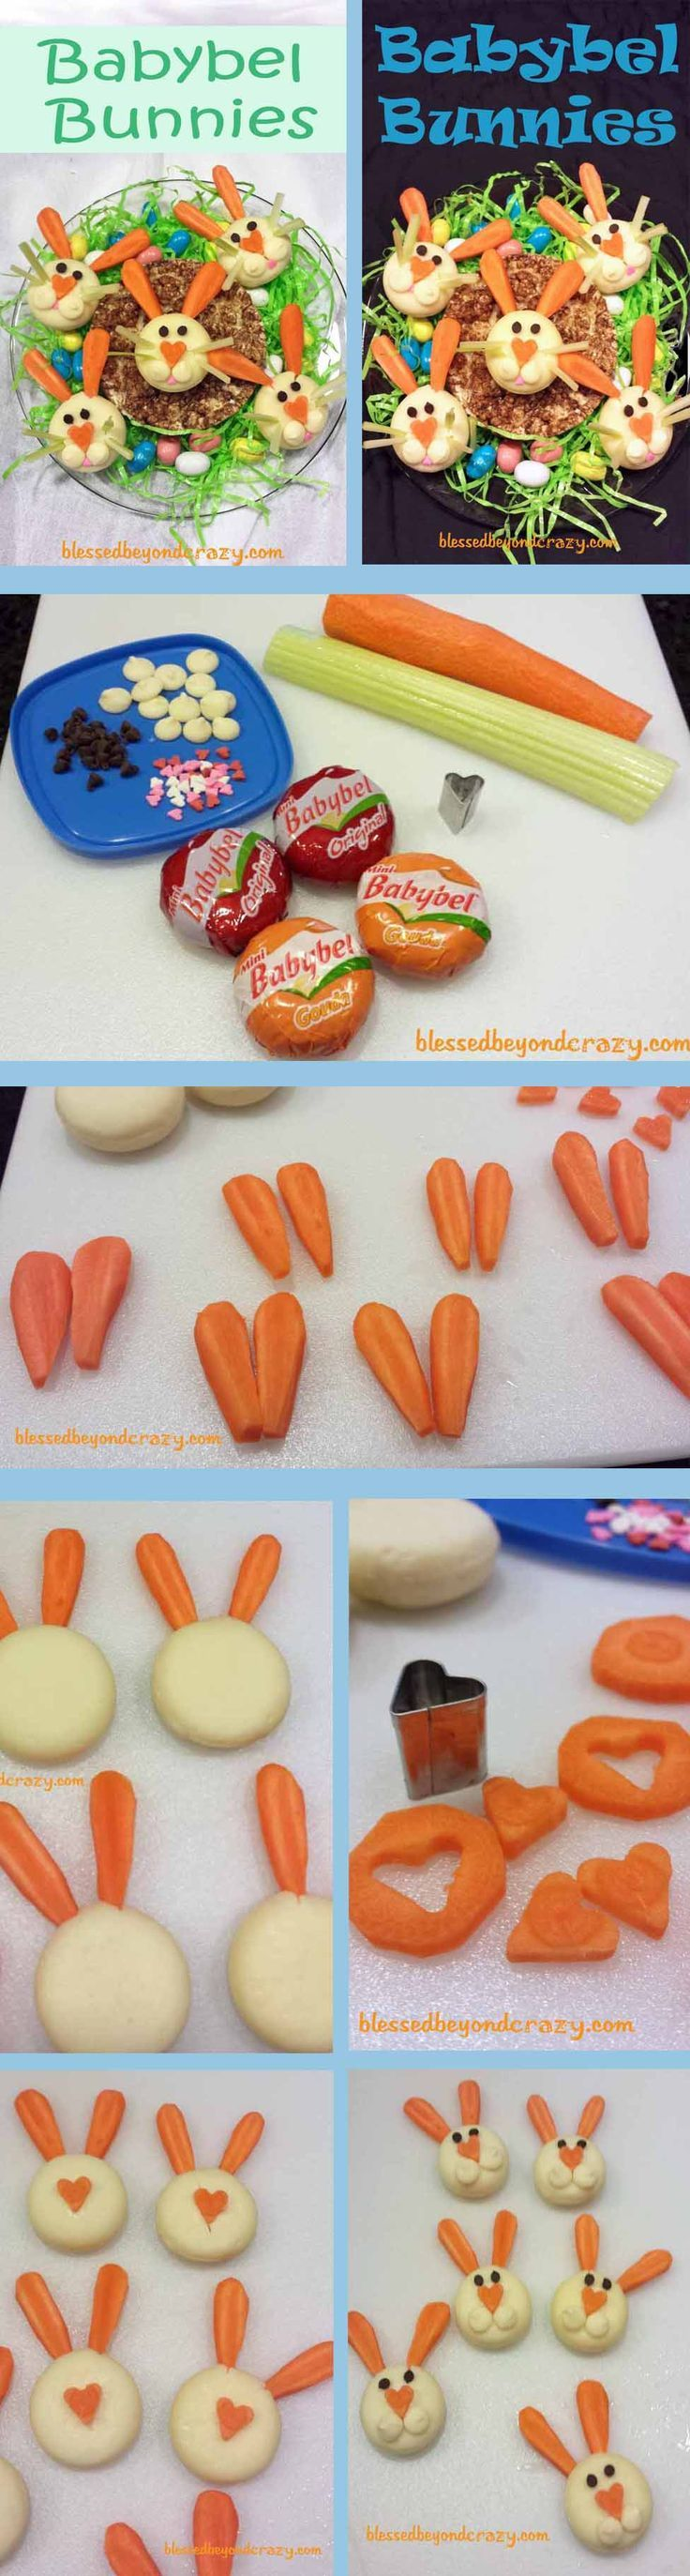 Healthy and Adorable Babybel Bunnies - fill a plate with these cute bunnies for an Easter appetizer or fun snack.